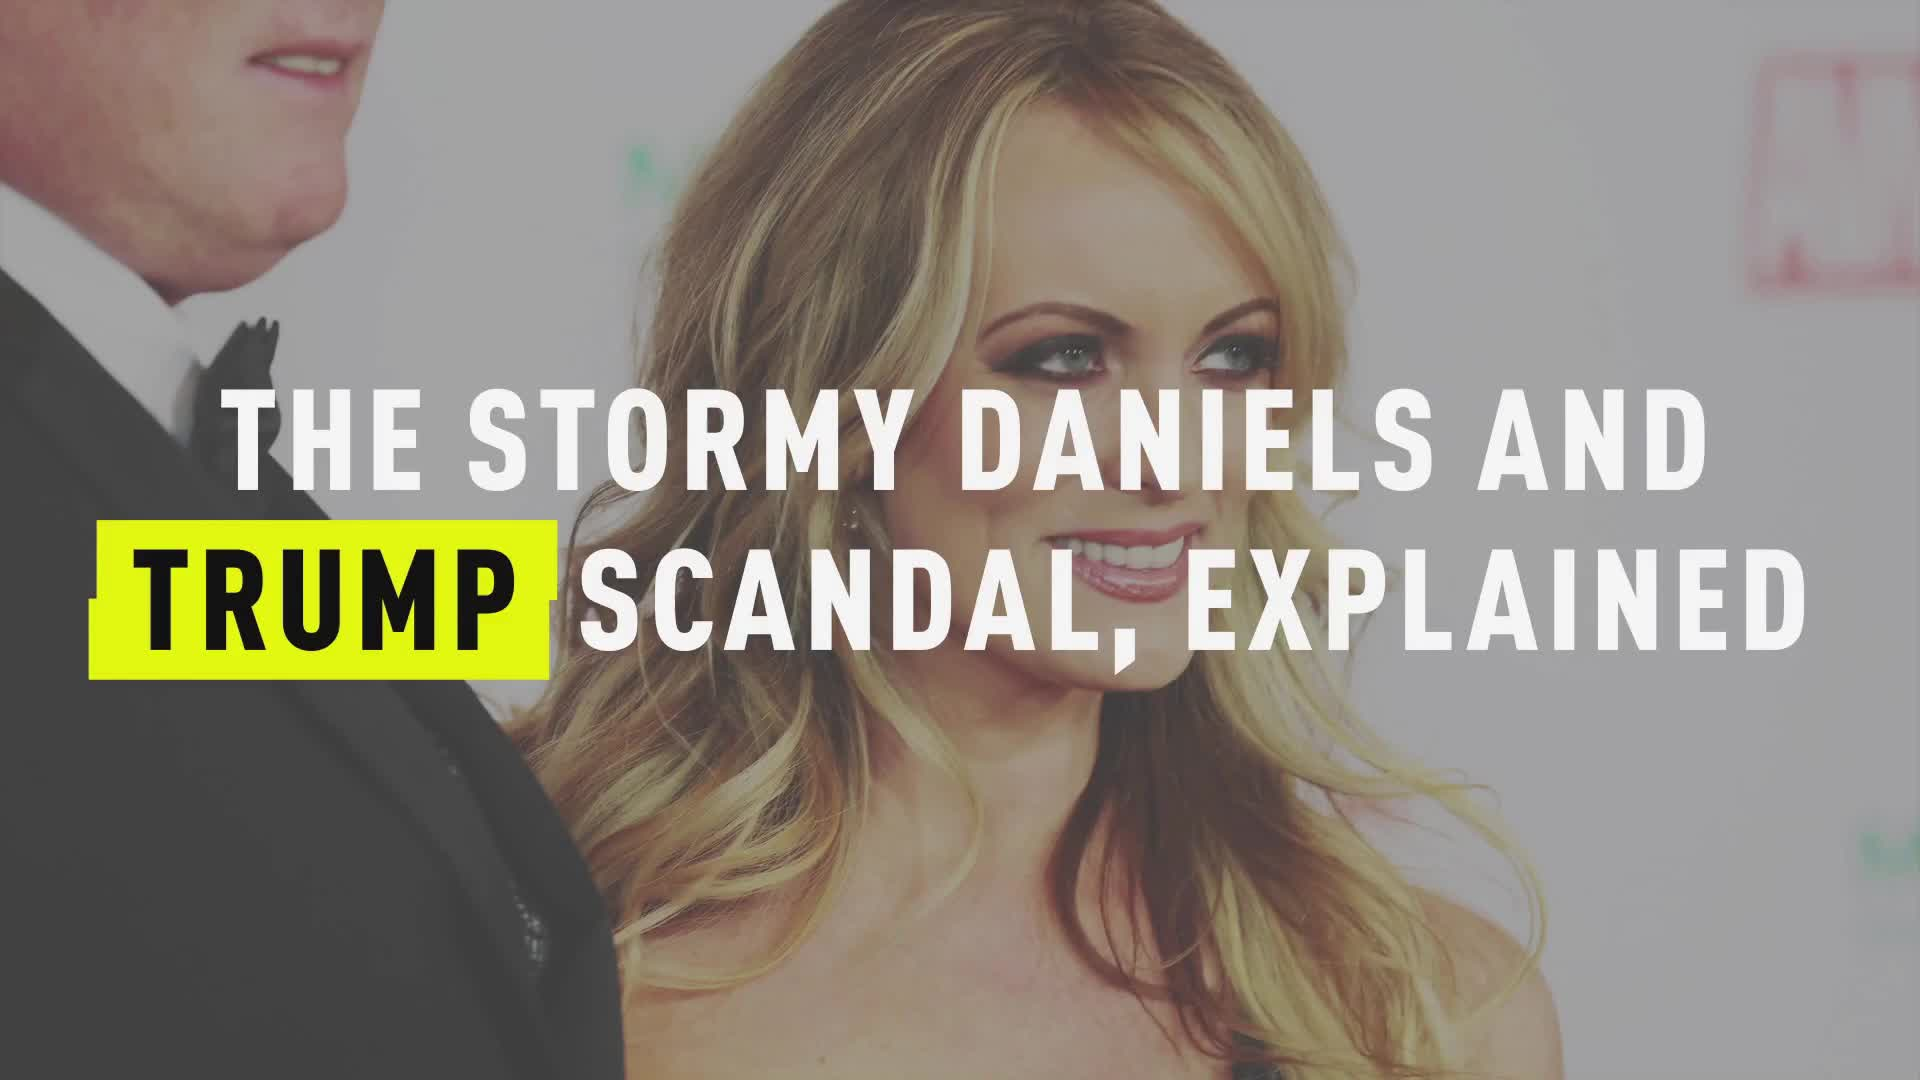 The Stormy Daniels and Trump Scandal, Explained